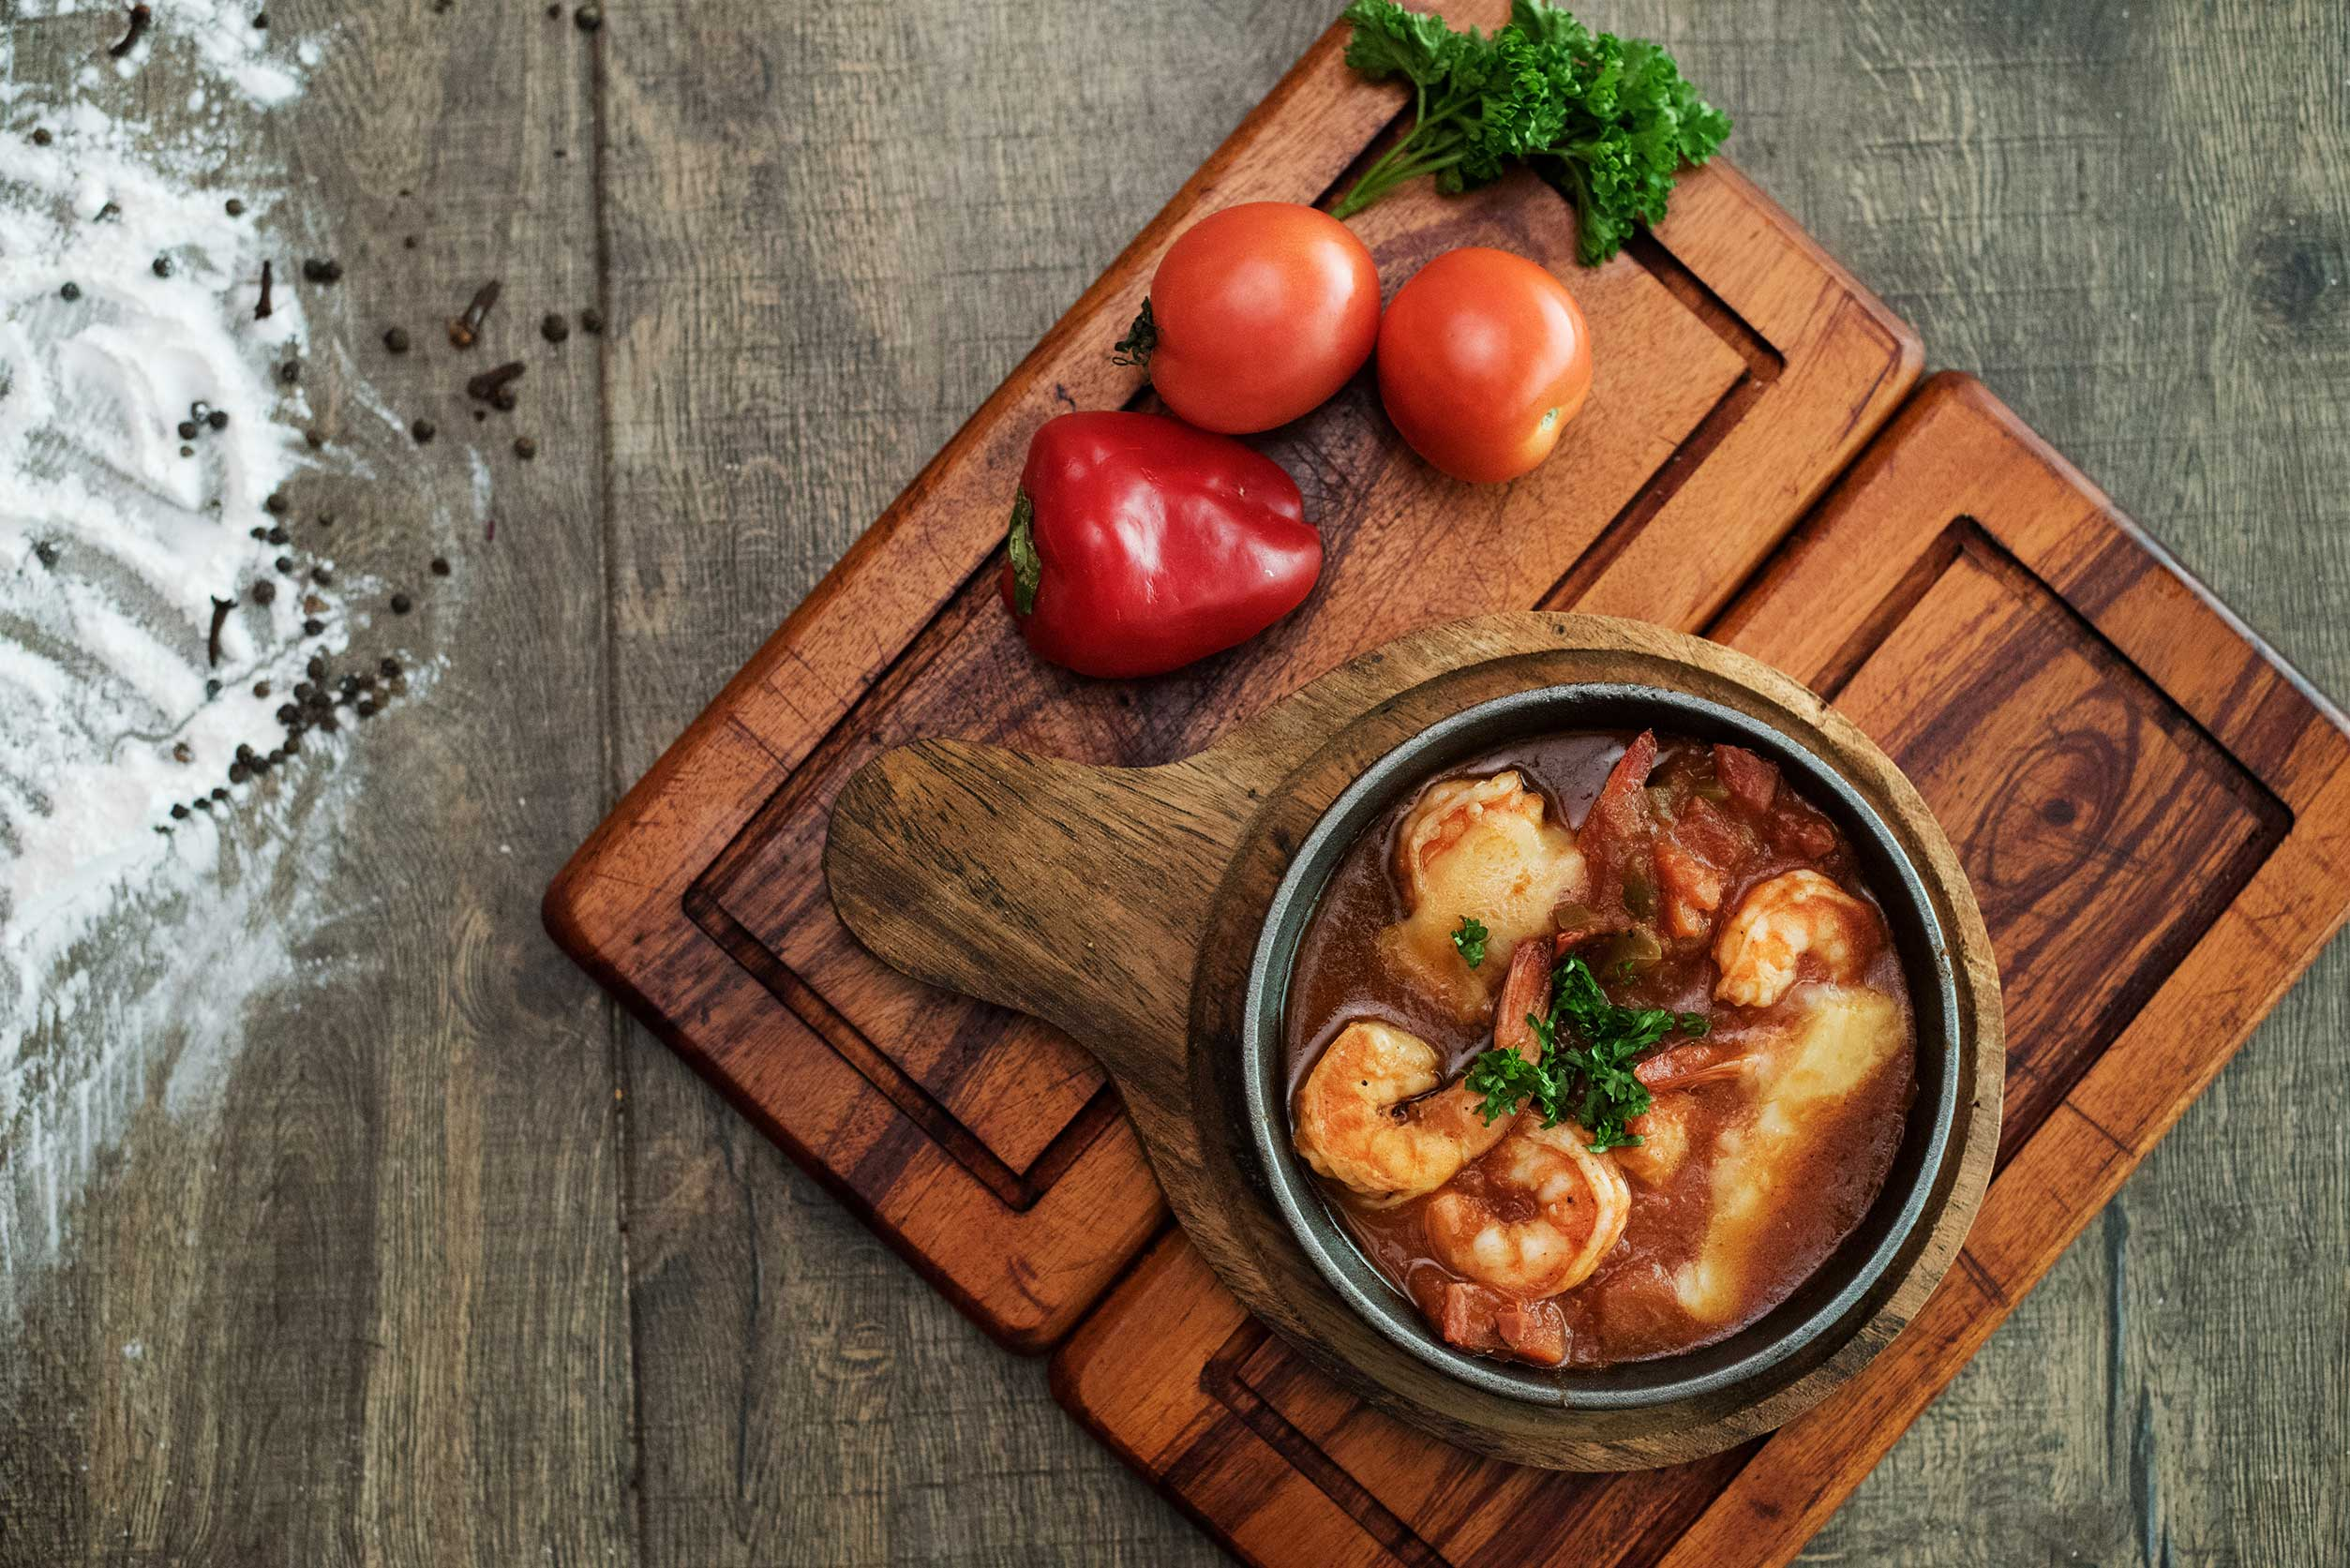 Grilled Prawns infused with ouzo in a rich tomato and herb sauce with feta cheese.